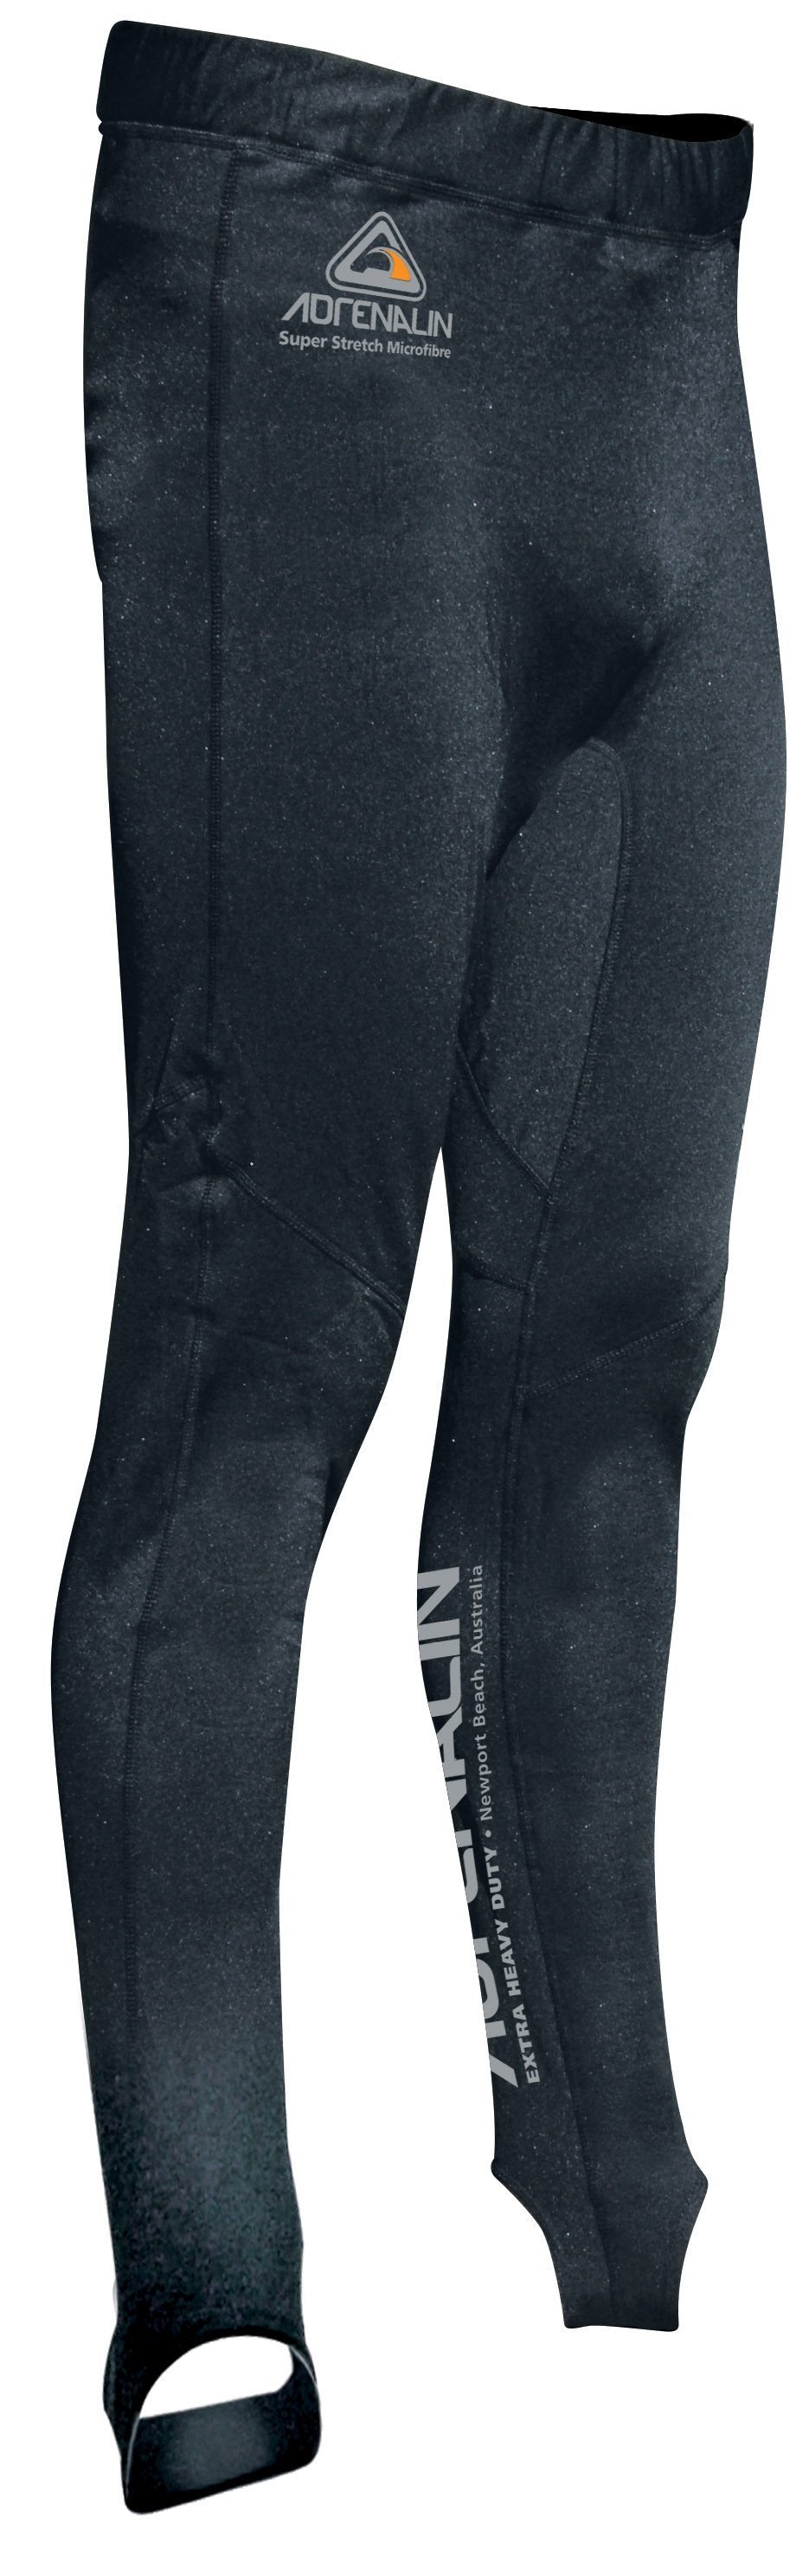 Adrenalin 'BodyShield' Microfibre Long Pants